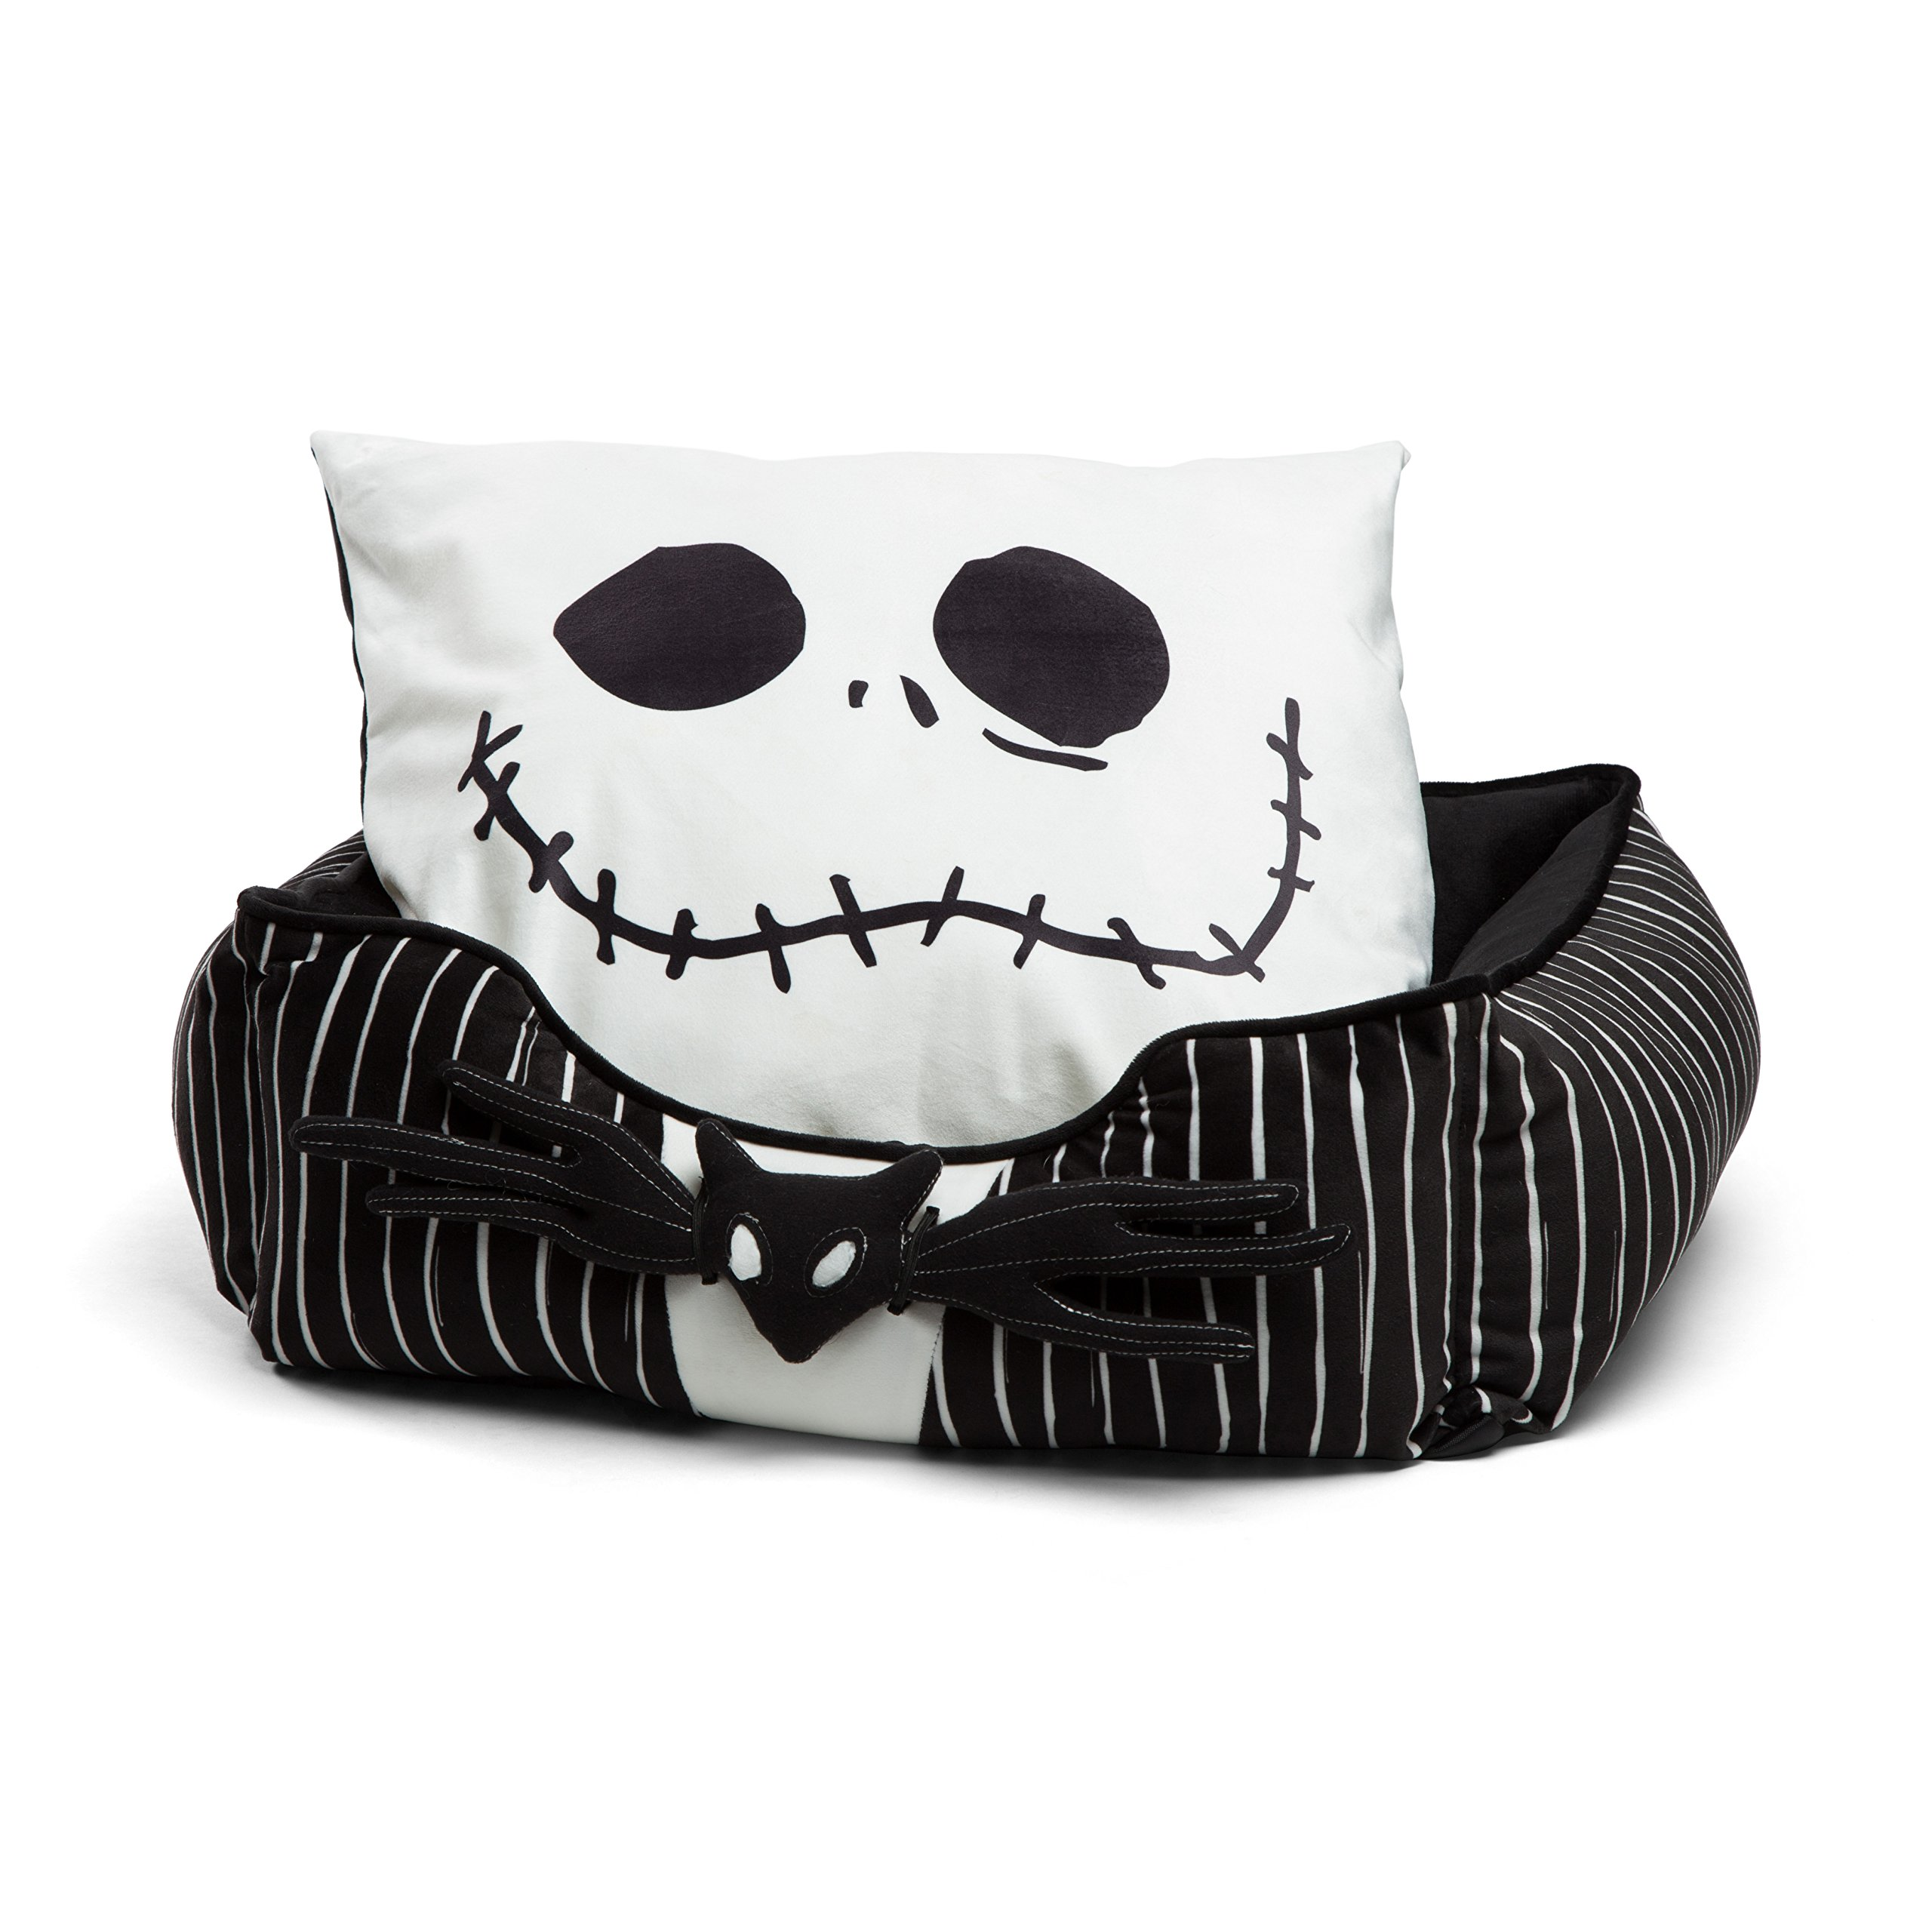 DisneyDisney Nightmare Before Christmas Jack Skellington Bolstered Corded Rectangular Cuddler Dog Bed/Cat Bed with Removable Toy bat 21''x19''x8'' by Disney